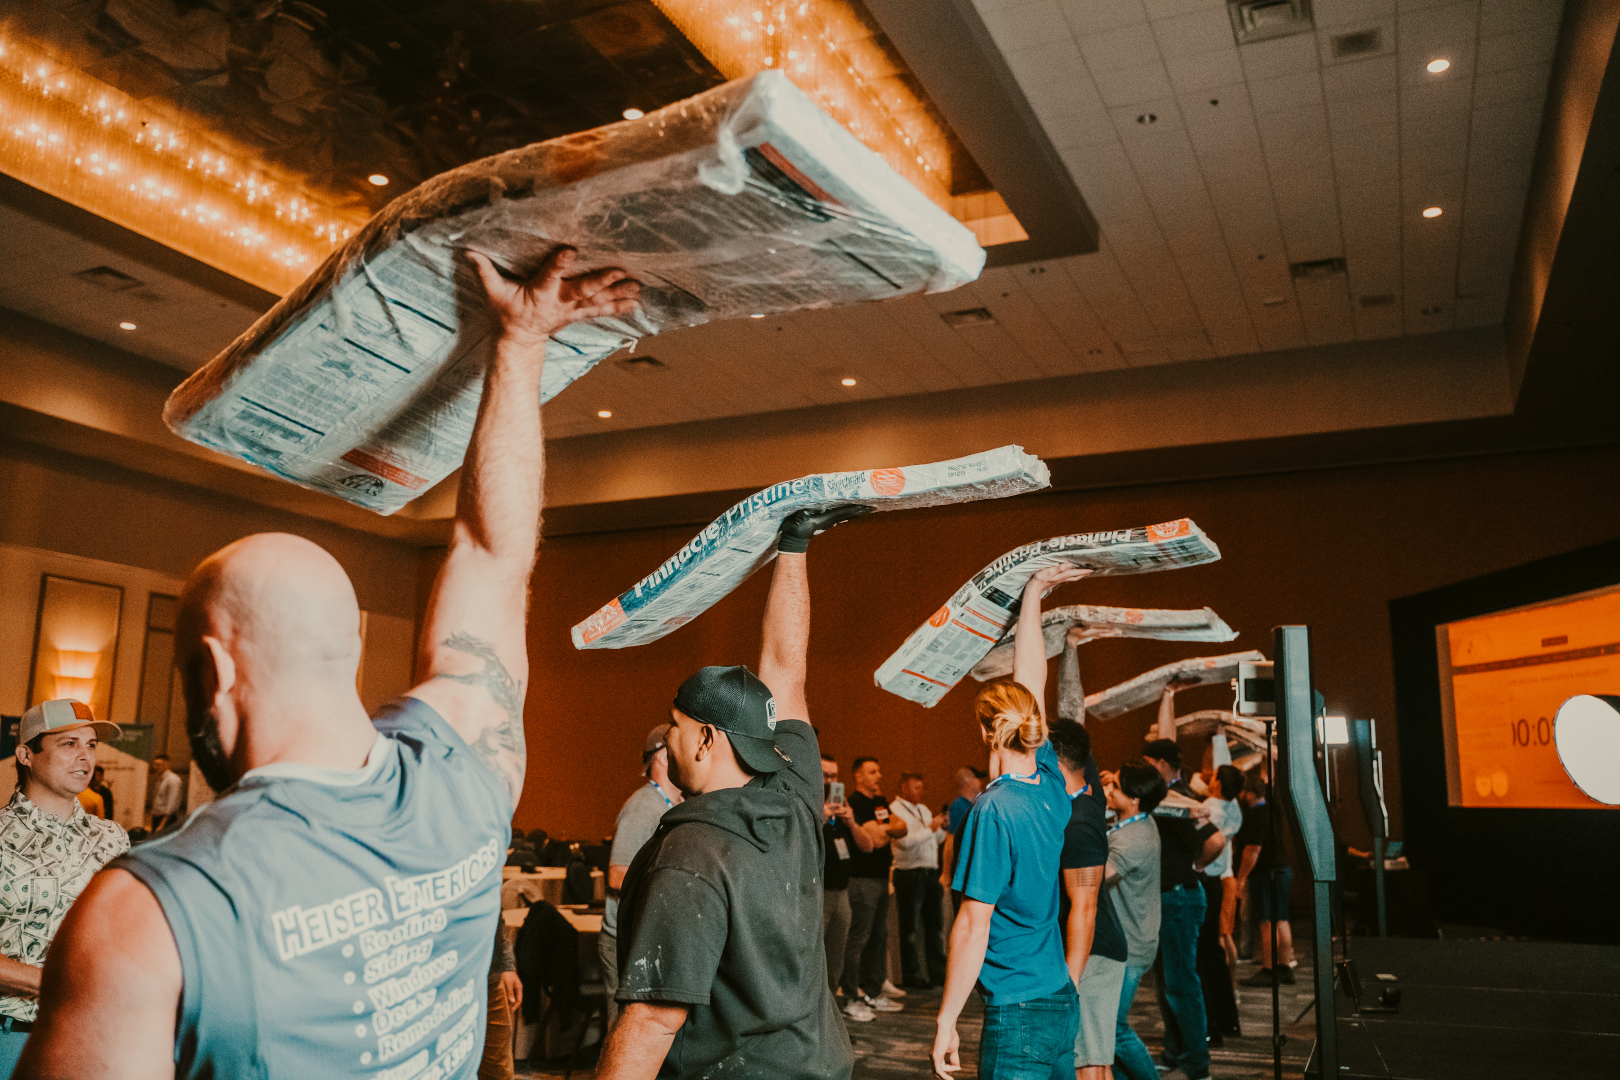 Roofing Insights Business Conference December 3 4 2020 In Orlando Florida